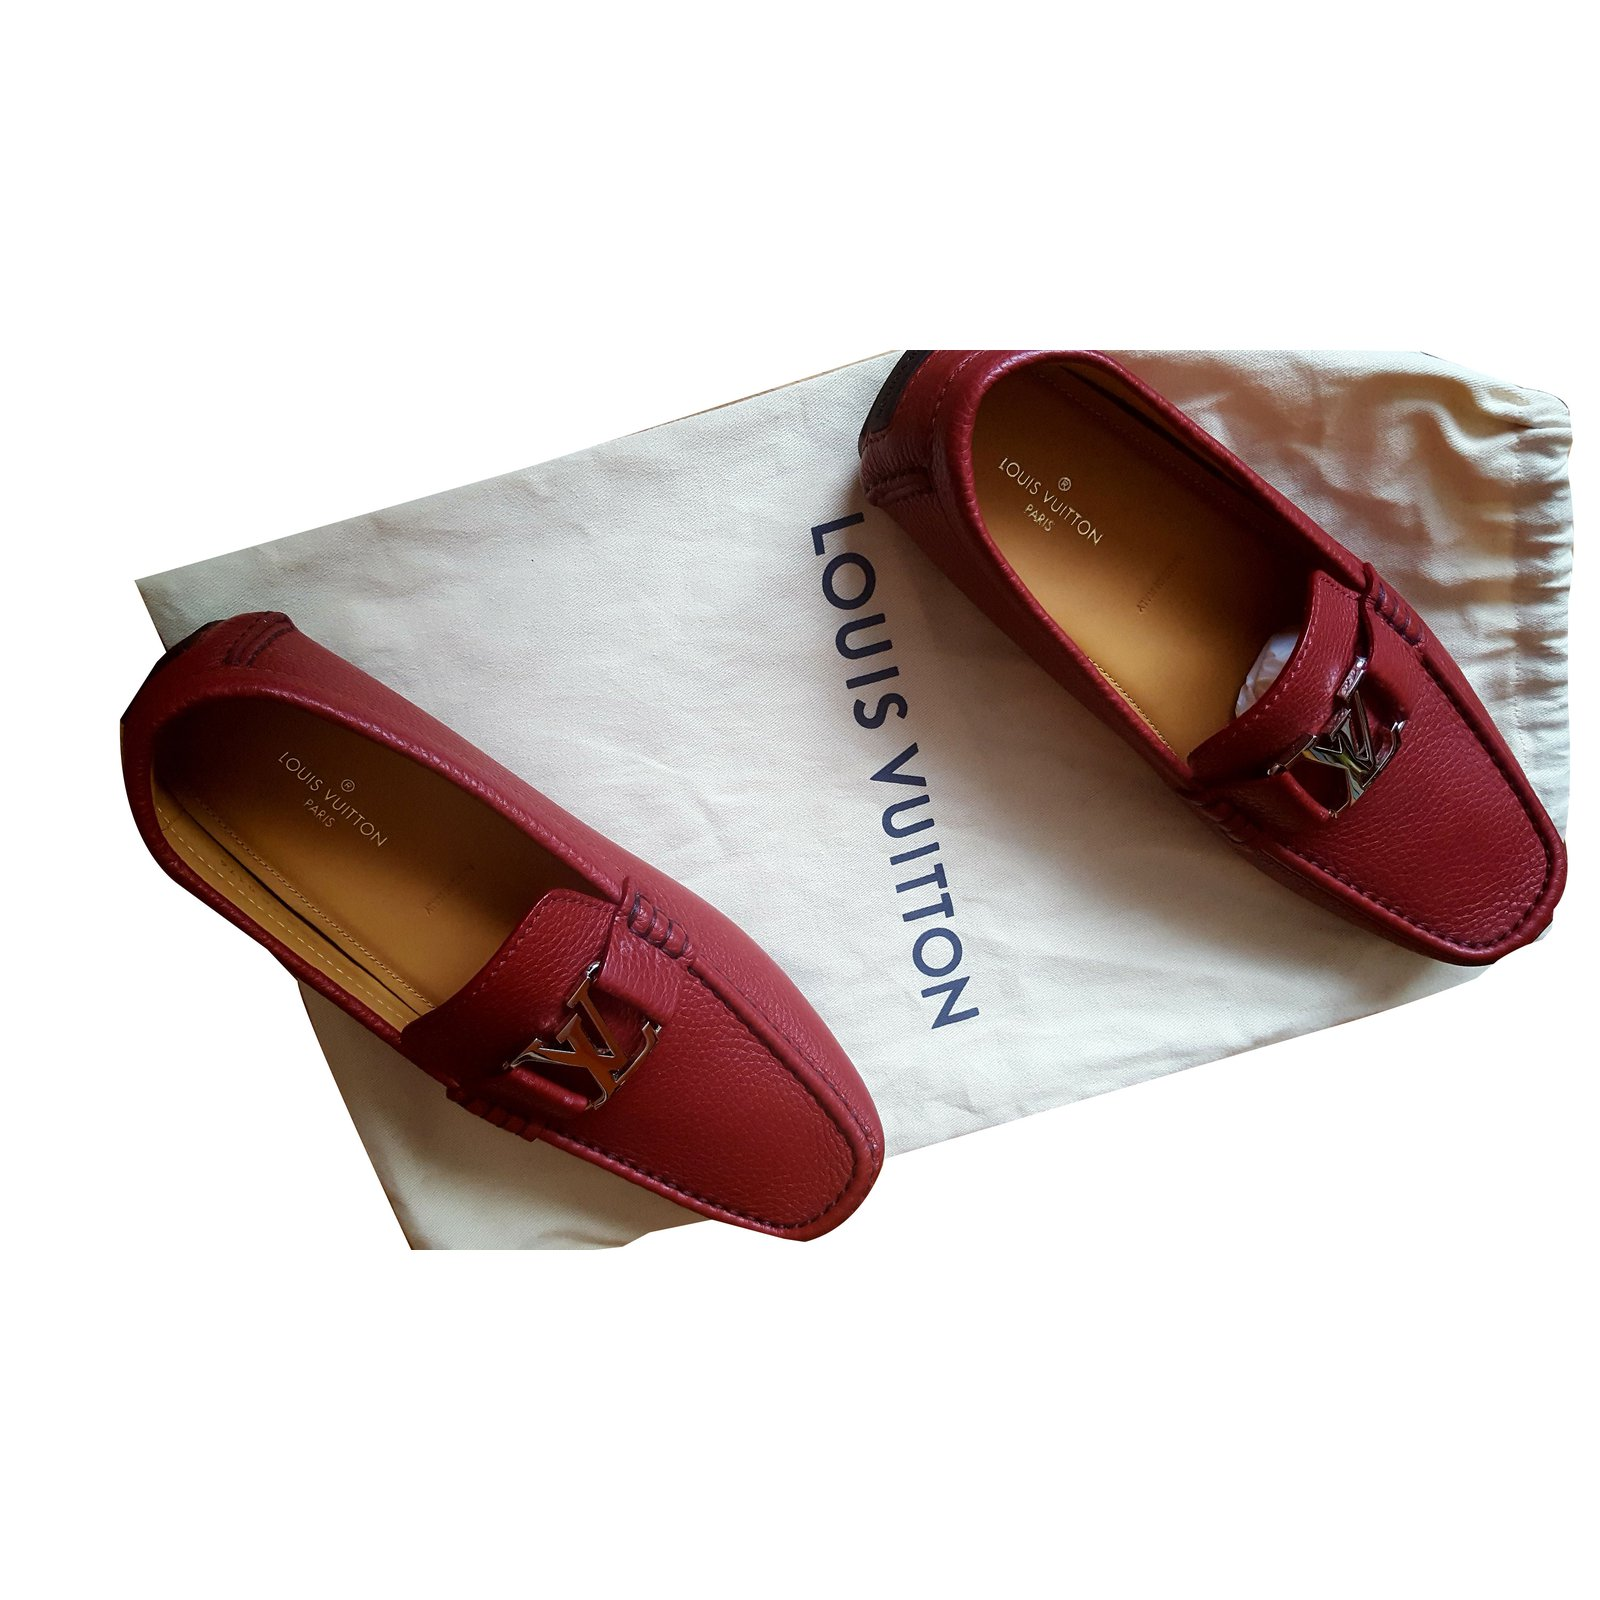 390053212ad0 ... Louis Vuitton Loafers Loafers Slip ons Leather Dark red ref.72298  Brown  ...